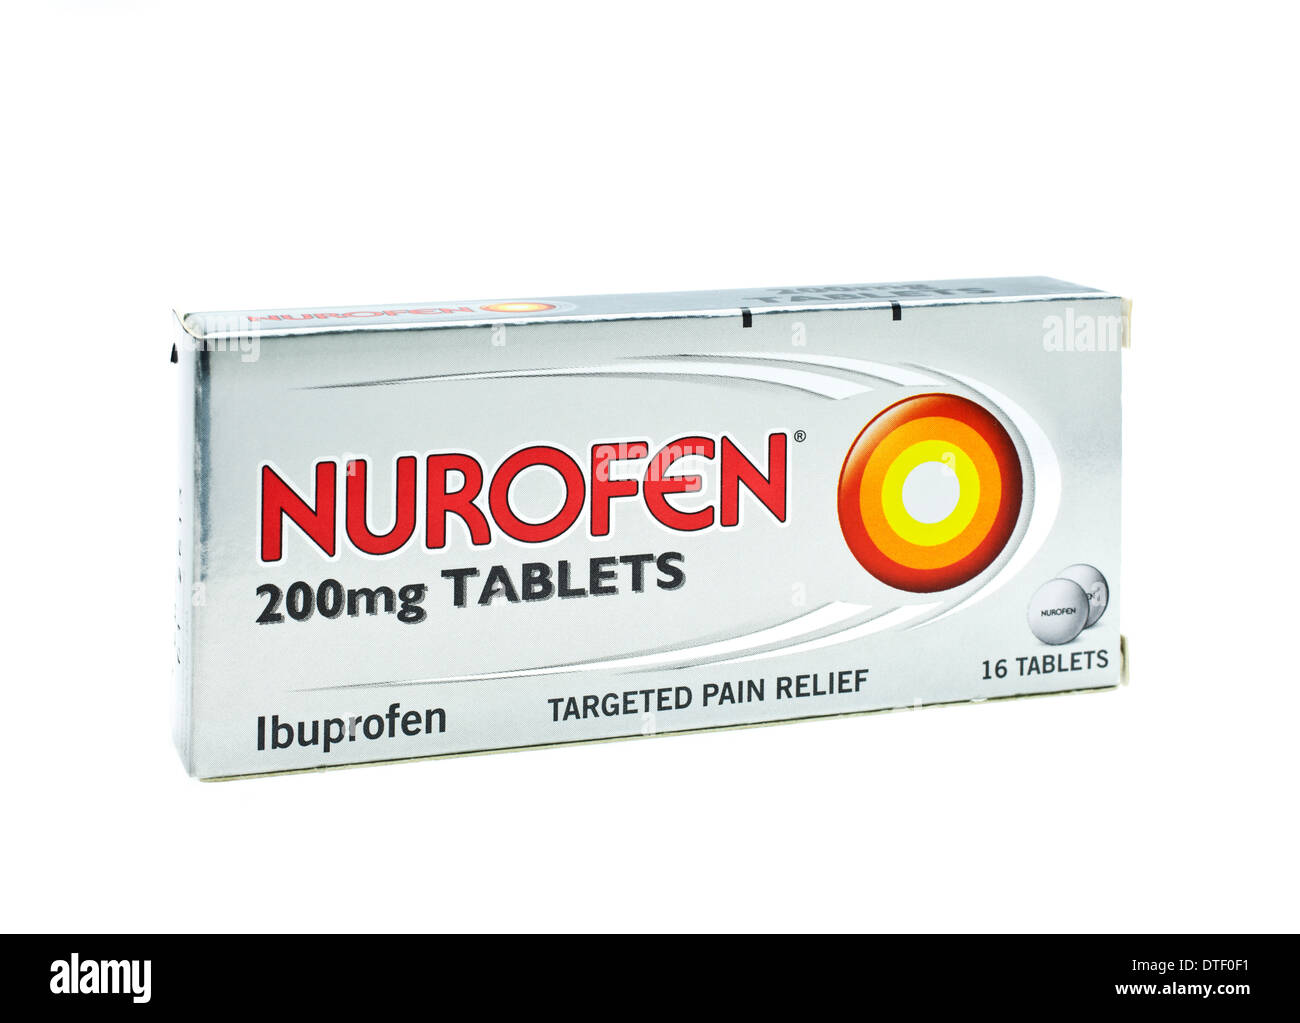 Fort de comprimés nurofen sur fond blanc Photo Stock